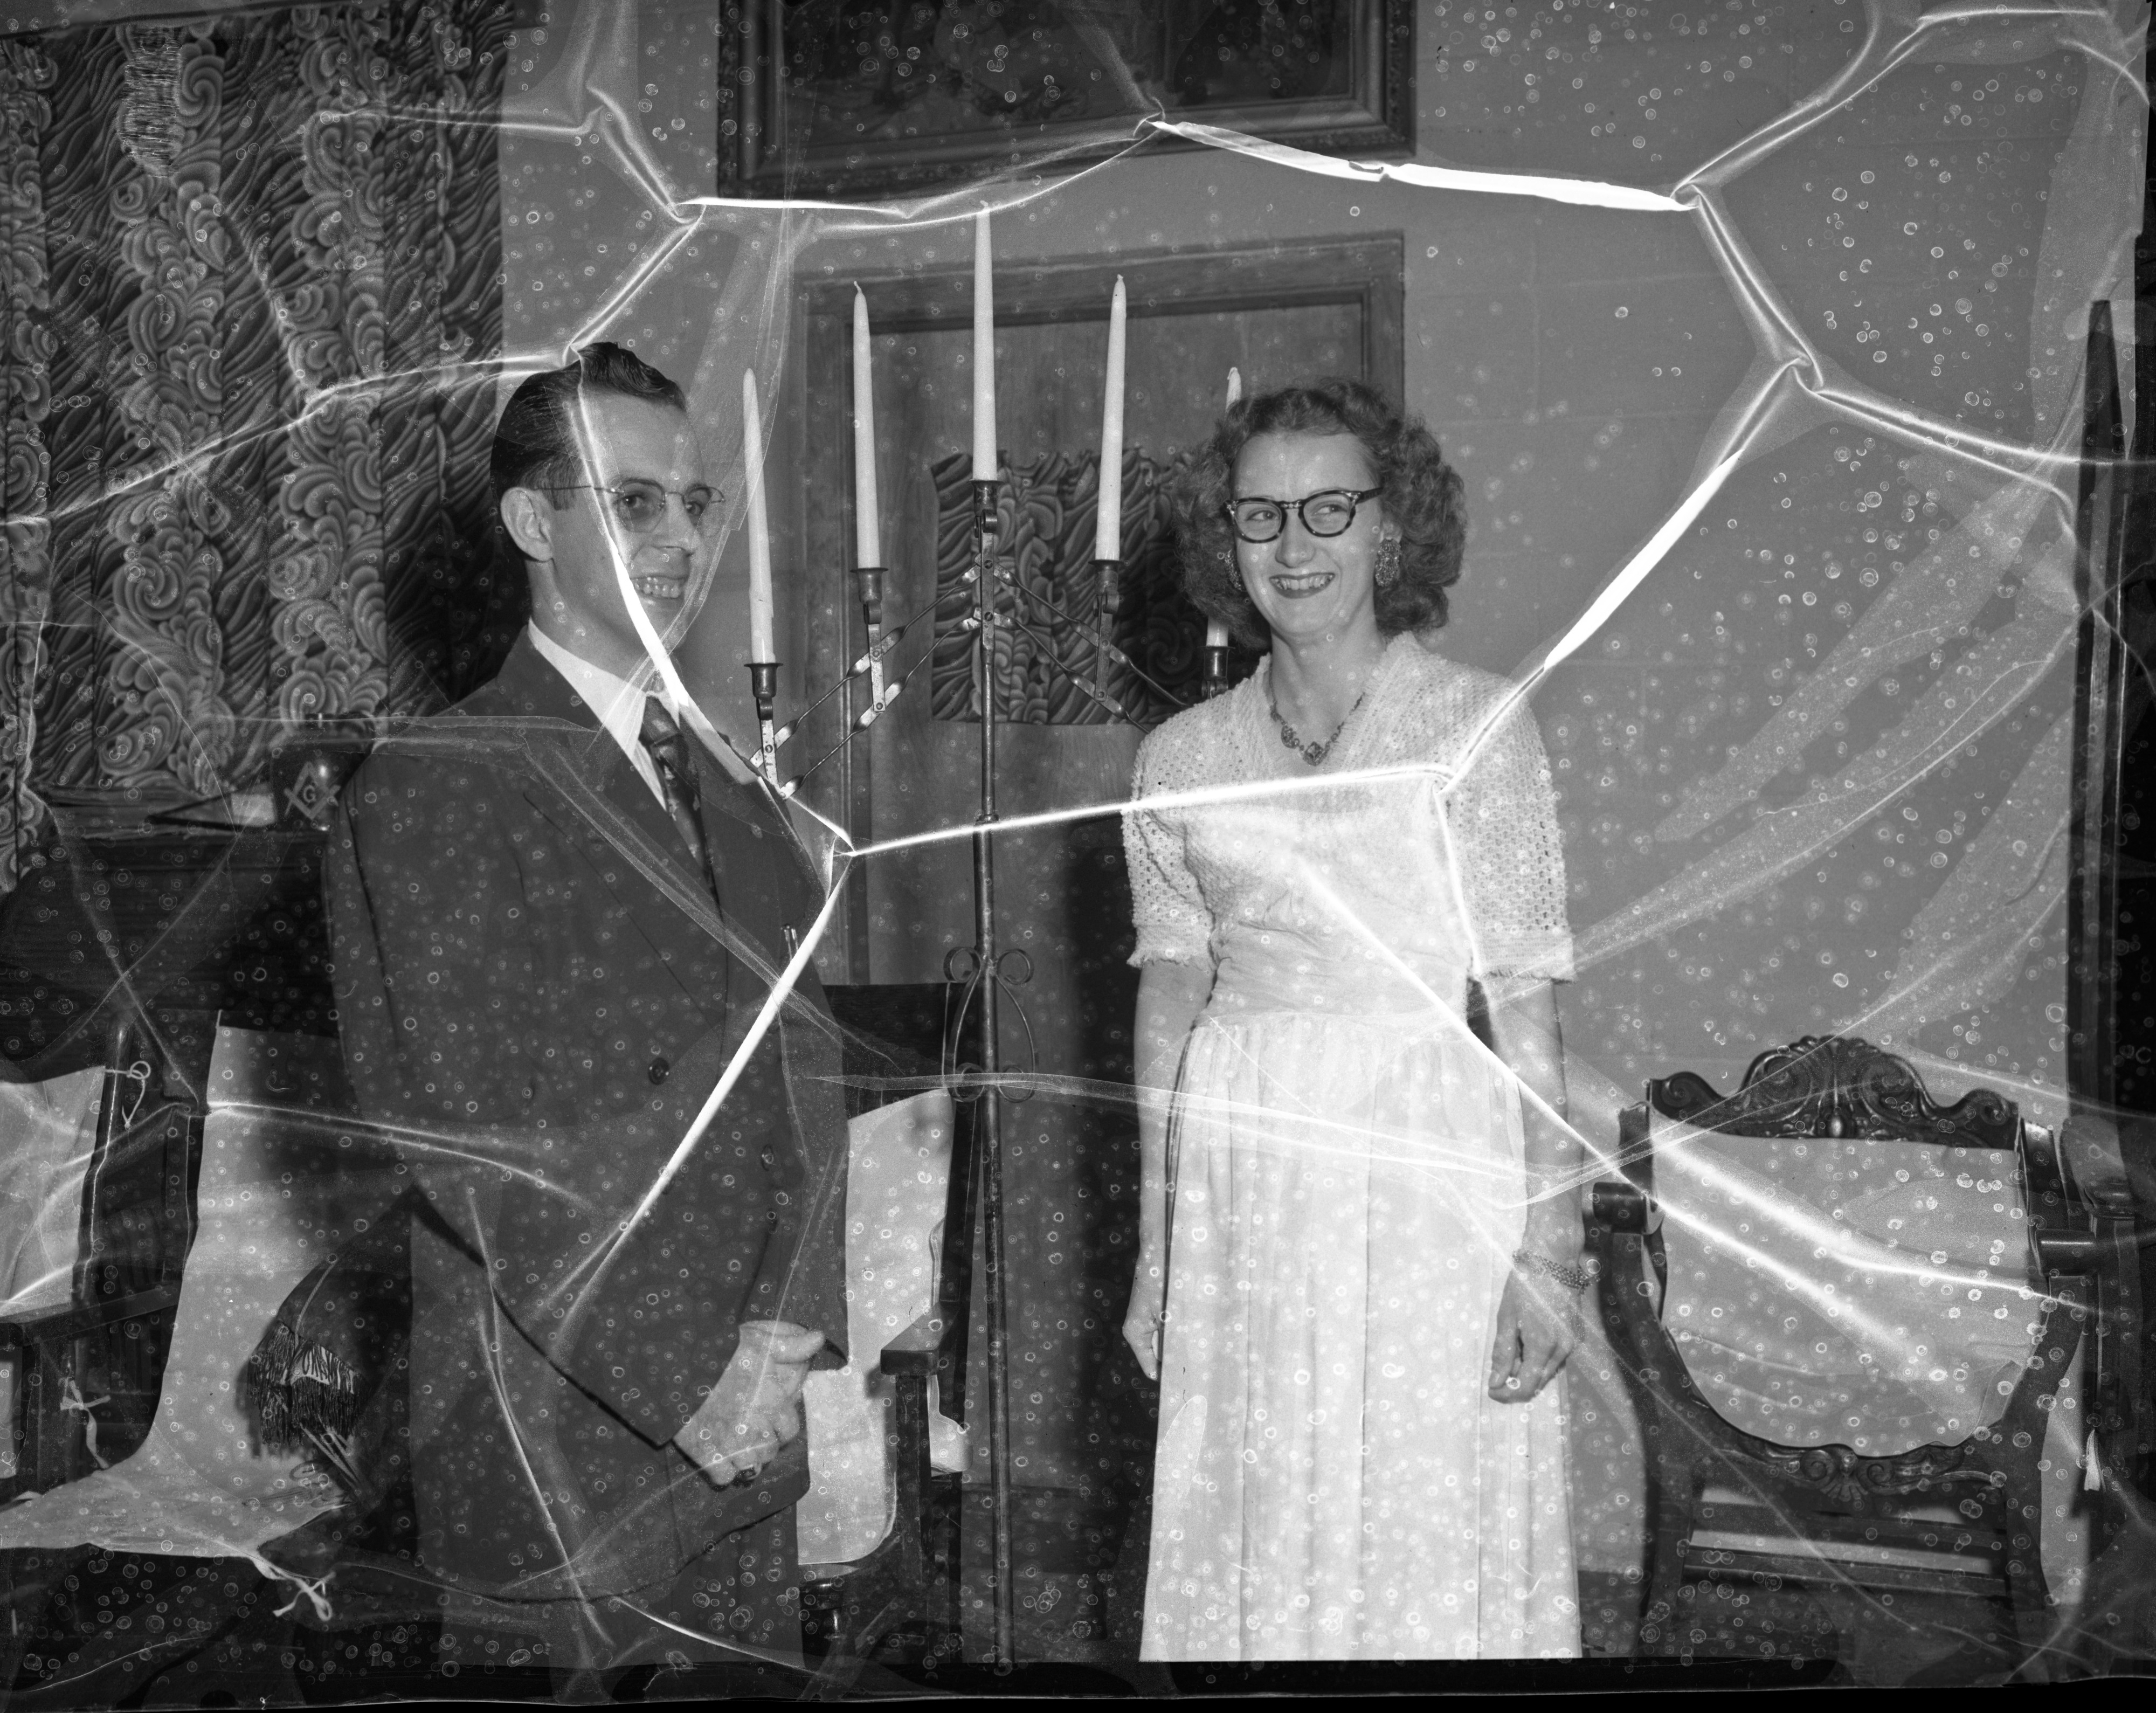 Officers Mrs. Frank McDermott, most excellent chief of Pythian Sisters, and Joseph Canzoneri, new chancellor commander of the Knights of Pythias of Queen City, Lodge 167, Ypsilanti, January 1955 image